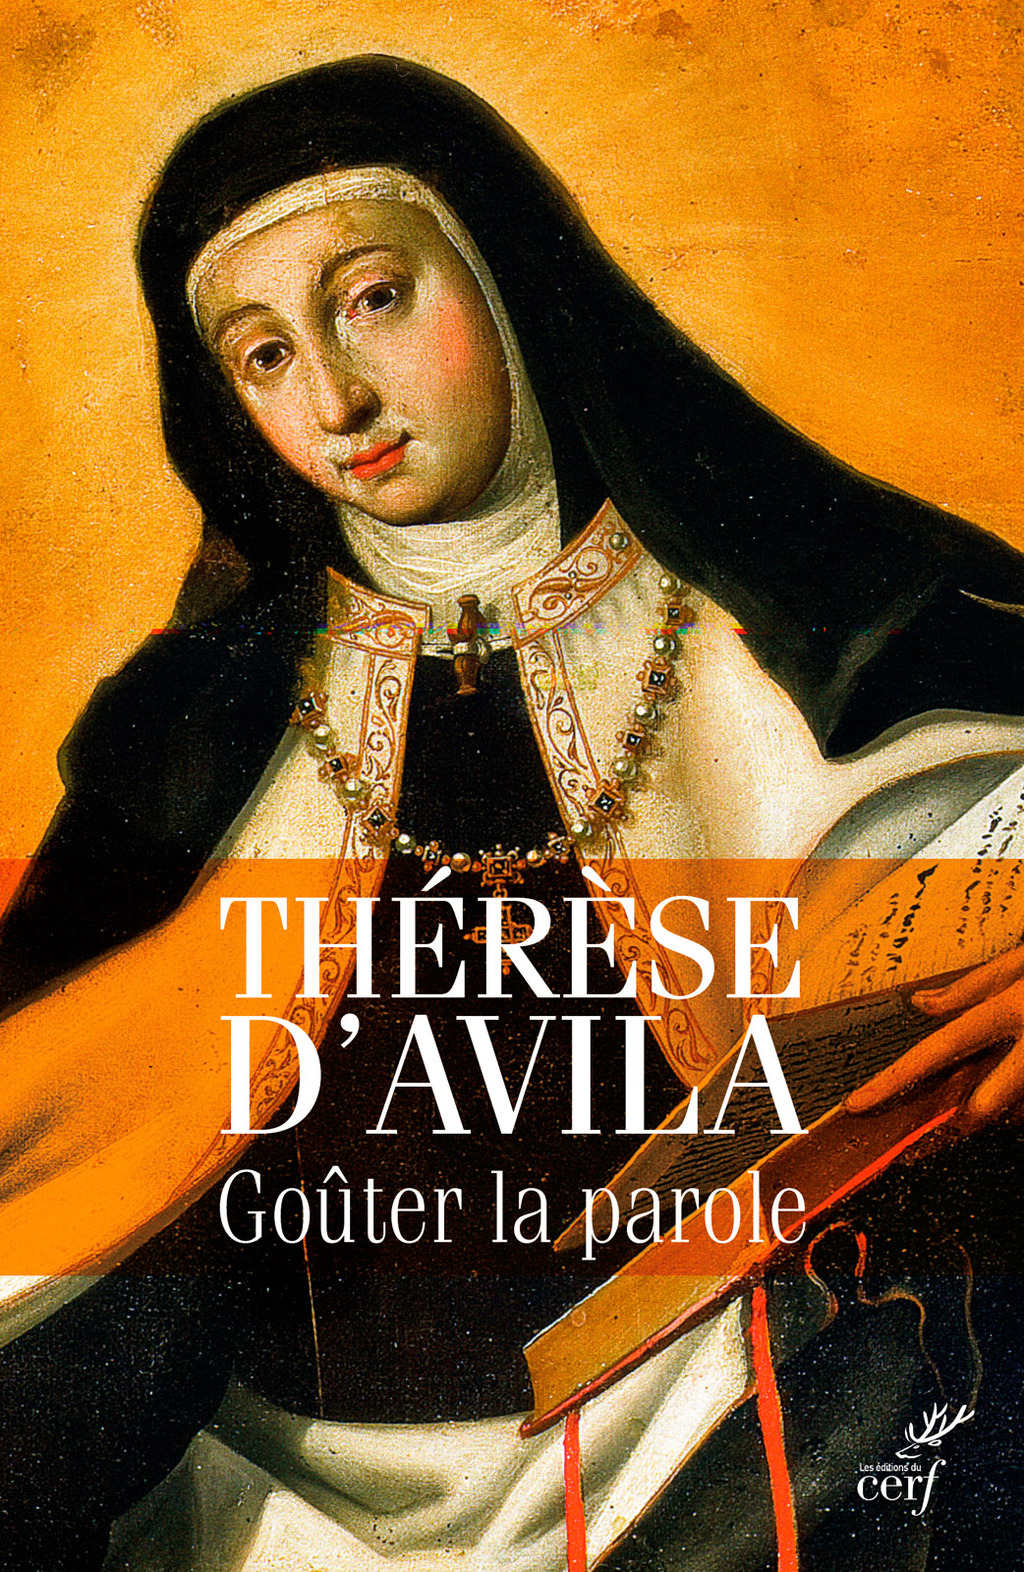 By Didier-Marie Golay PRINTISBN: 9782204111867 E-TEXT ISBN: 9782204112802 Edition: 0